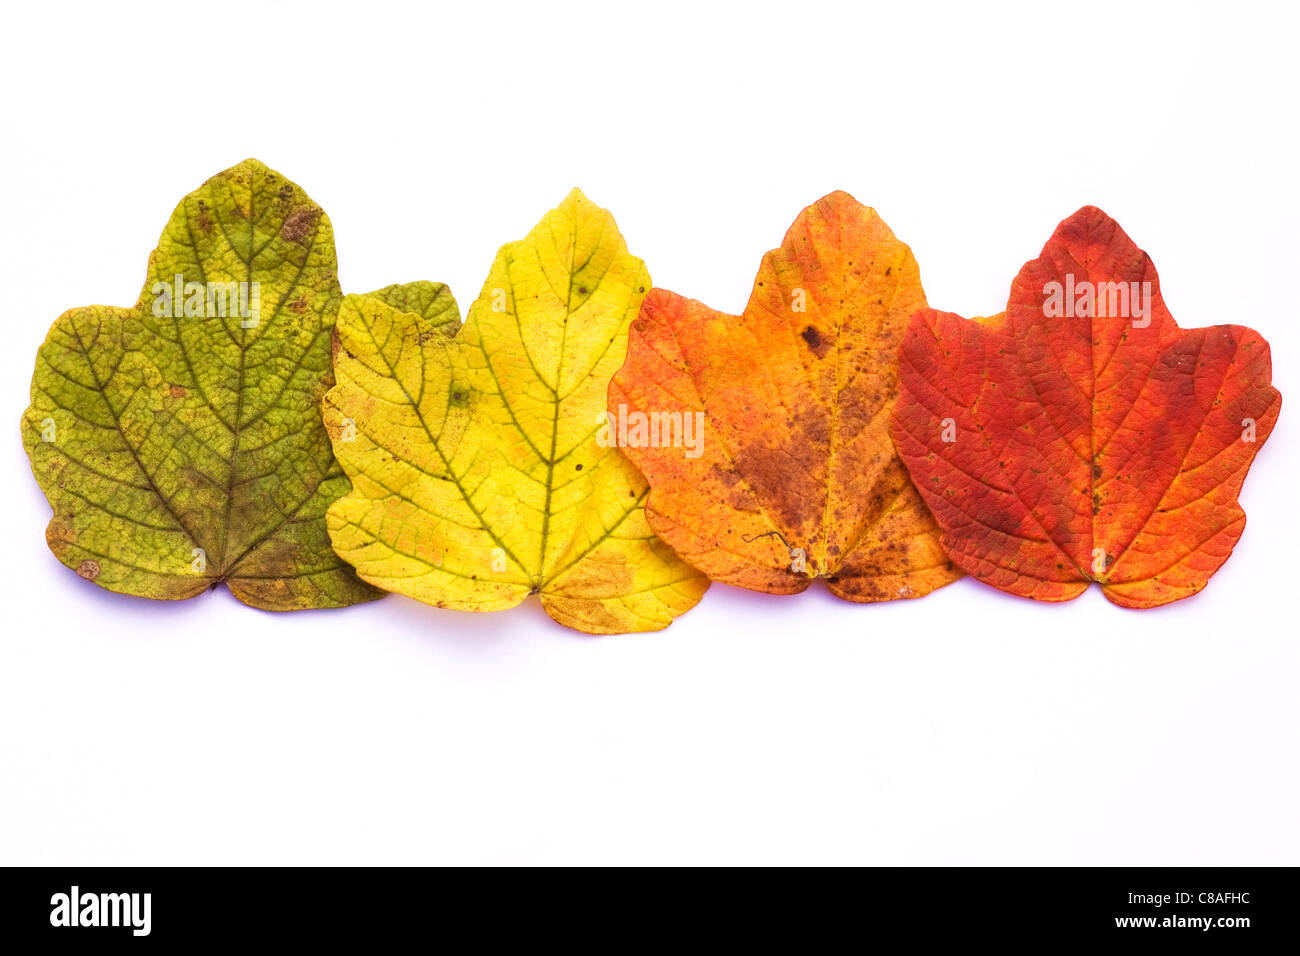 The changing colour of Autumn leaves isolated on a white background. - Stock Image